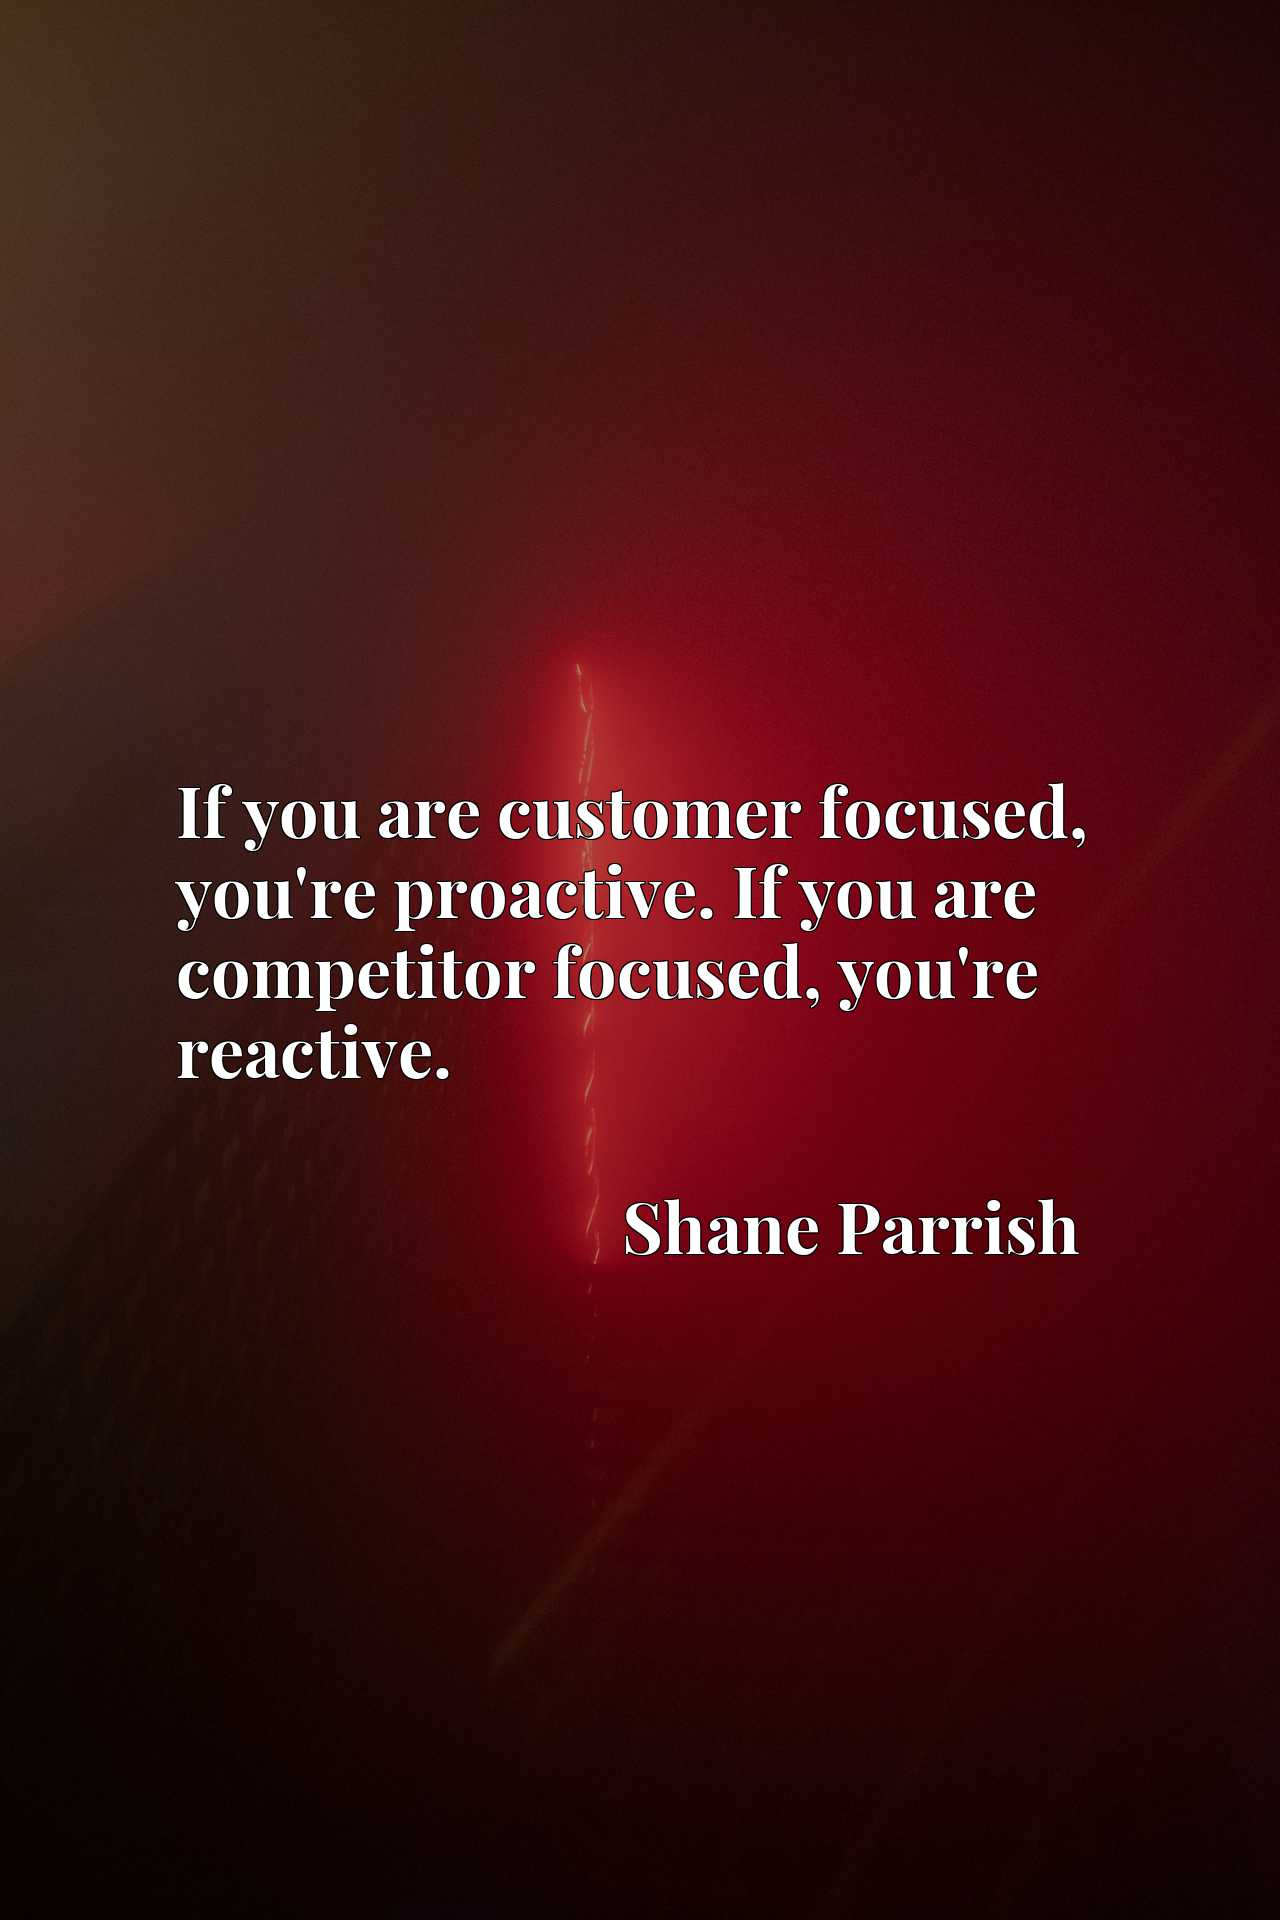 If you are customer focused, you're proactive. If you are competitor focused, you're reactive.